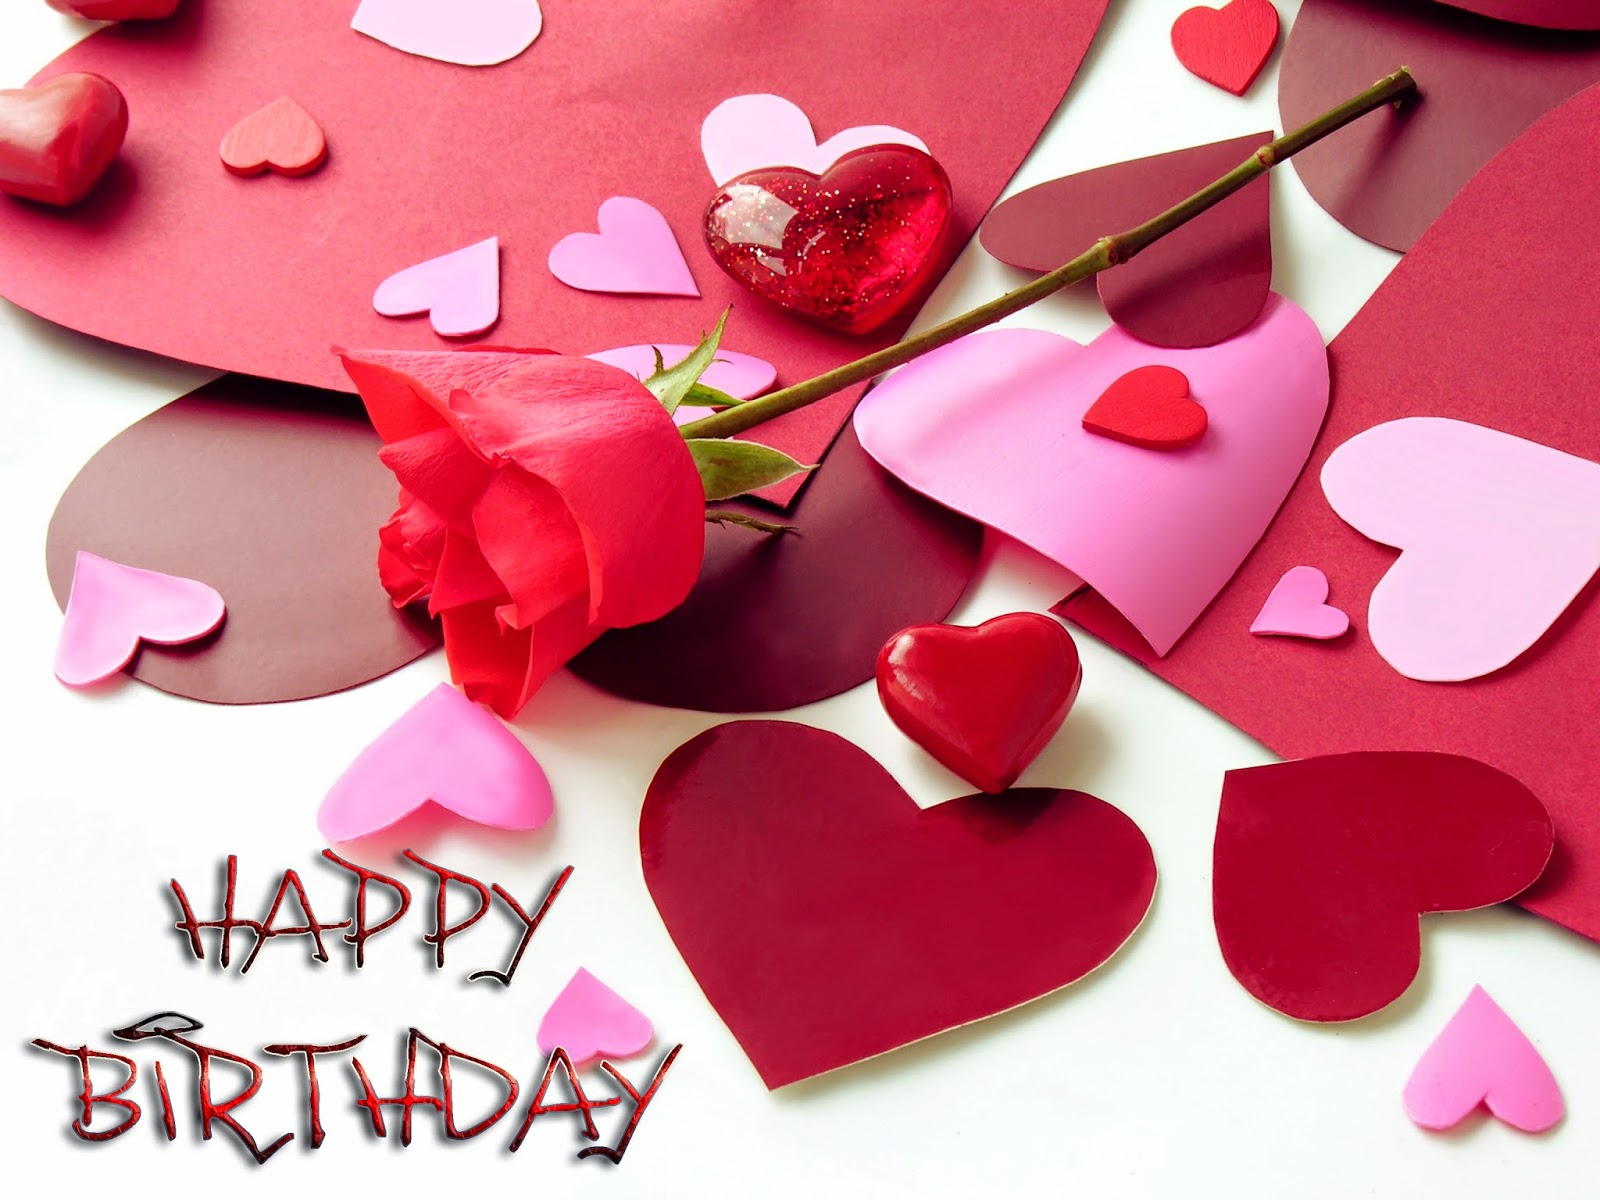 The Collection Of Romantic Birthday Wishes That Your Girlfriend Will